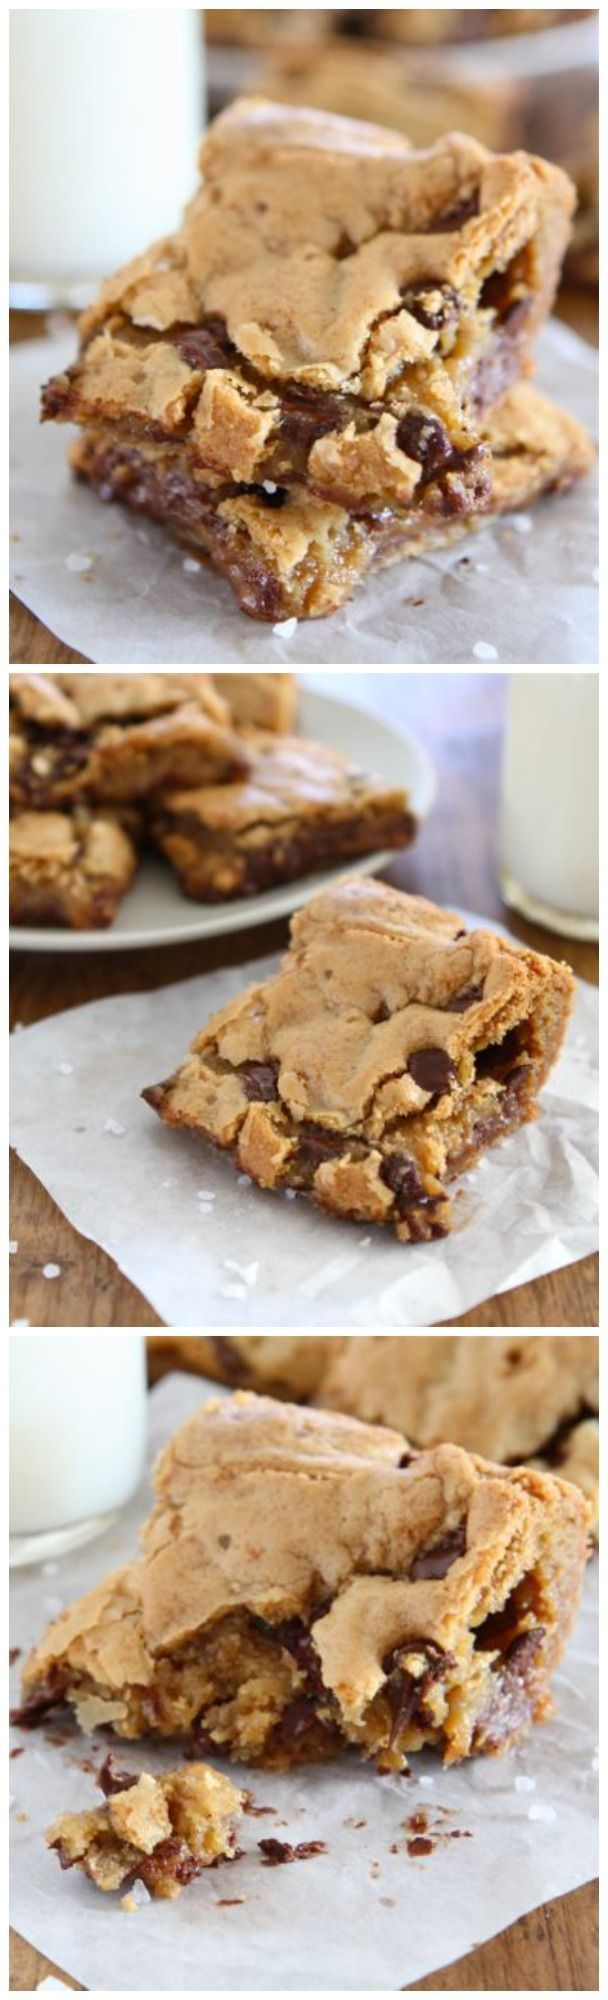 Chocolate Chip Salted Caramel Cookie Bars Recipe on twopeasandtheirpod.com Everyone LOVES these bars! The perfect dessert! #cookies